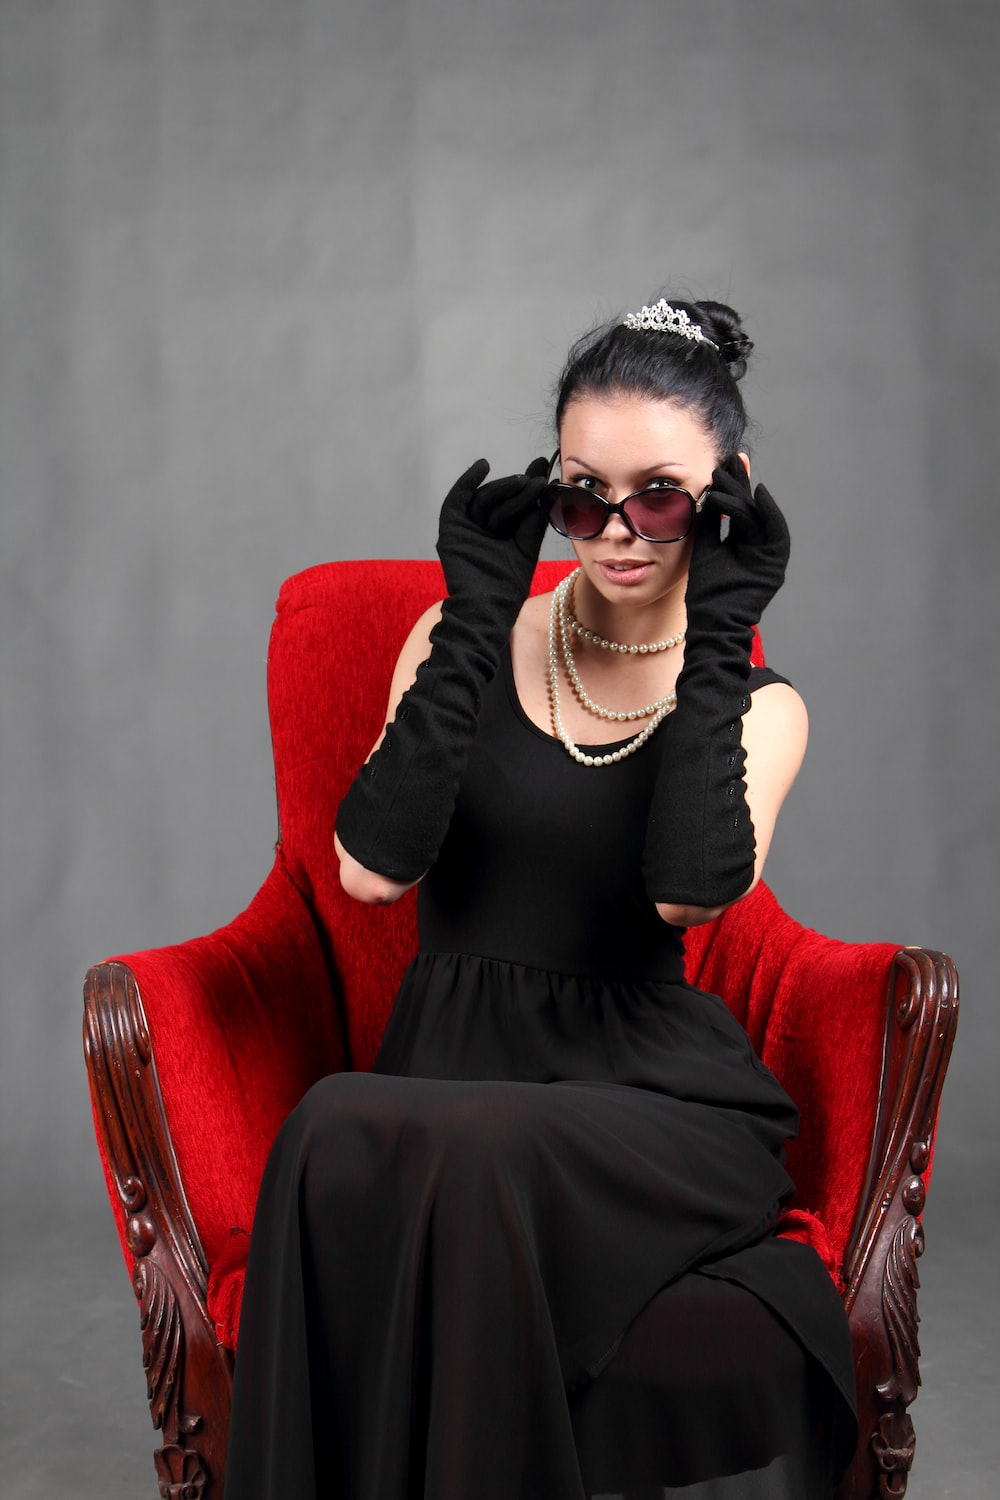 woman wearing black dress sitting on chair